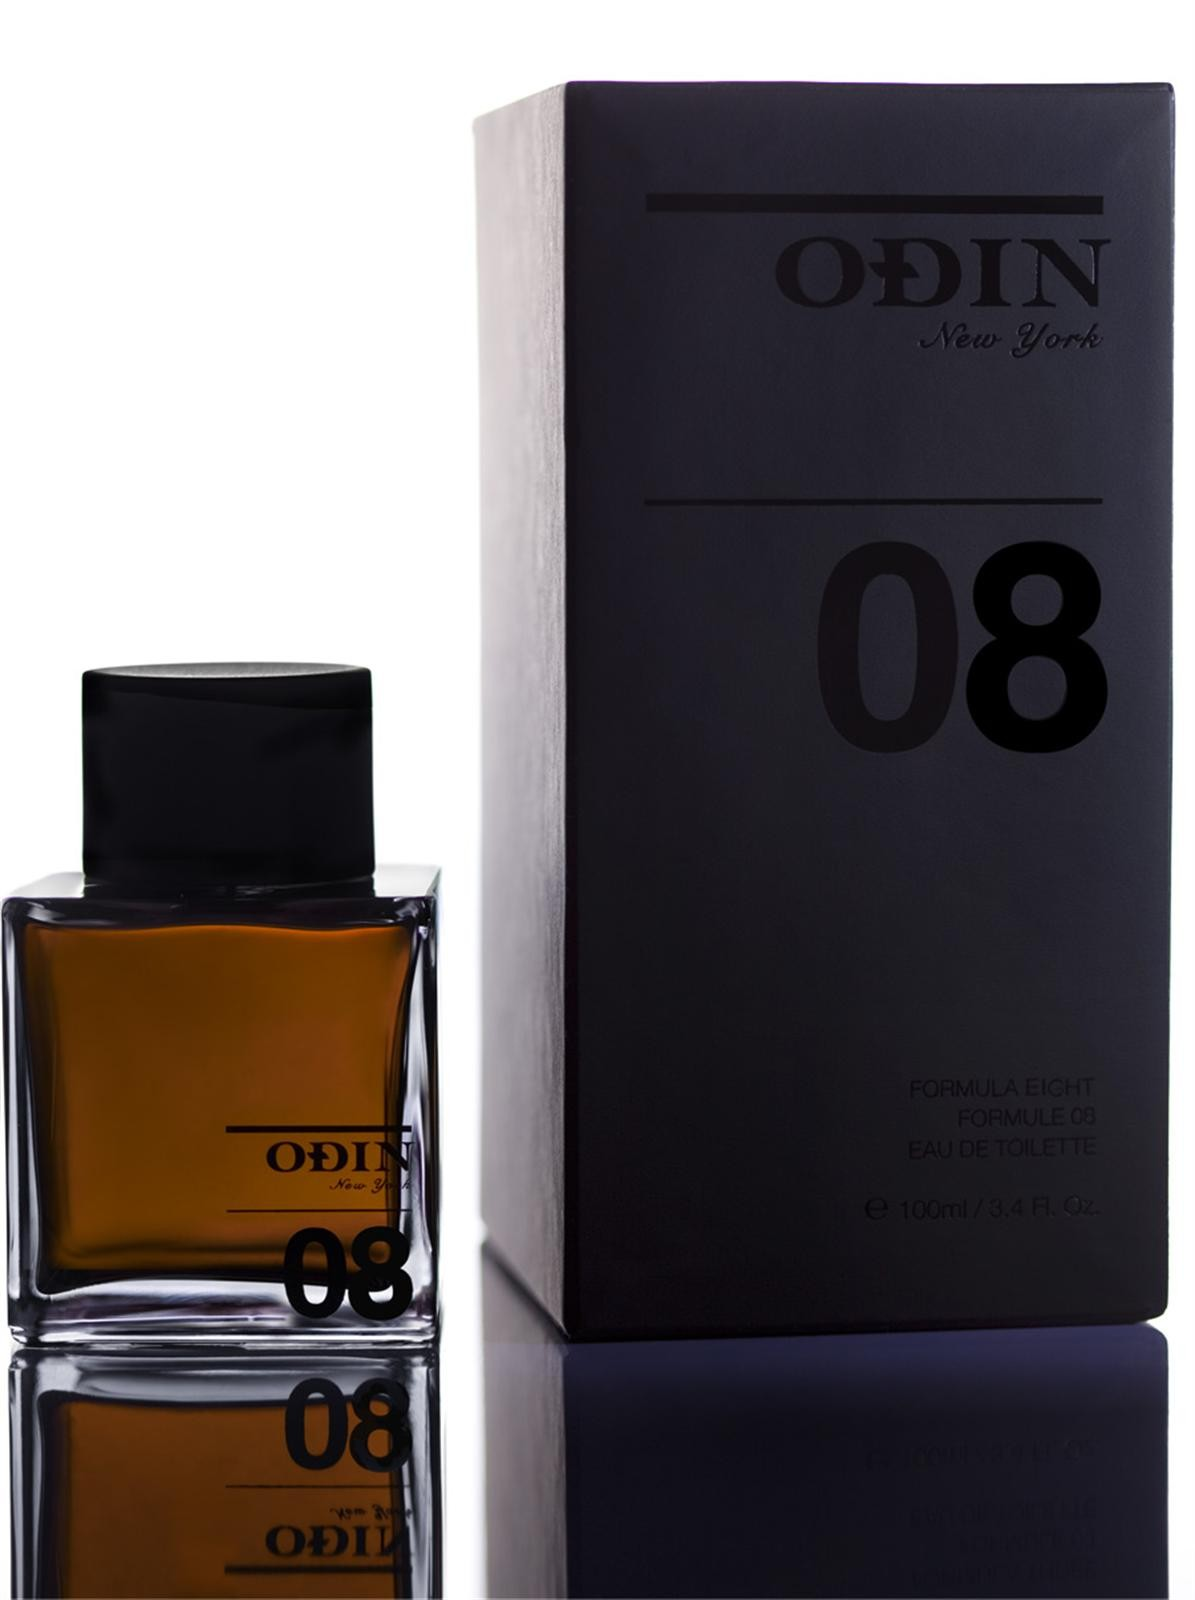 ODIN NEW YORK 08 SEYLON EDP 100 ML